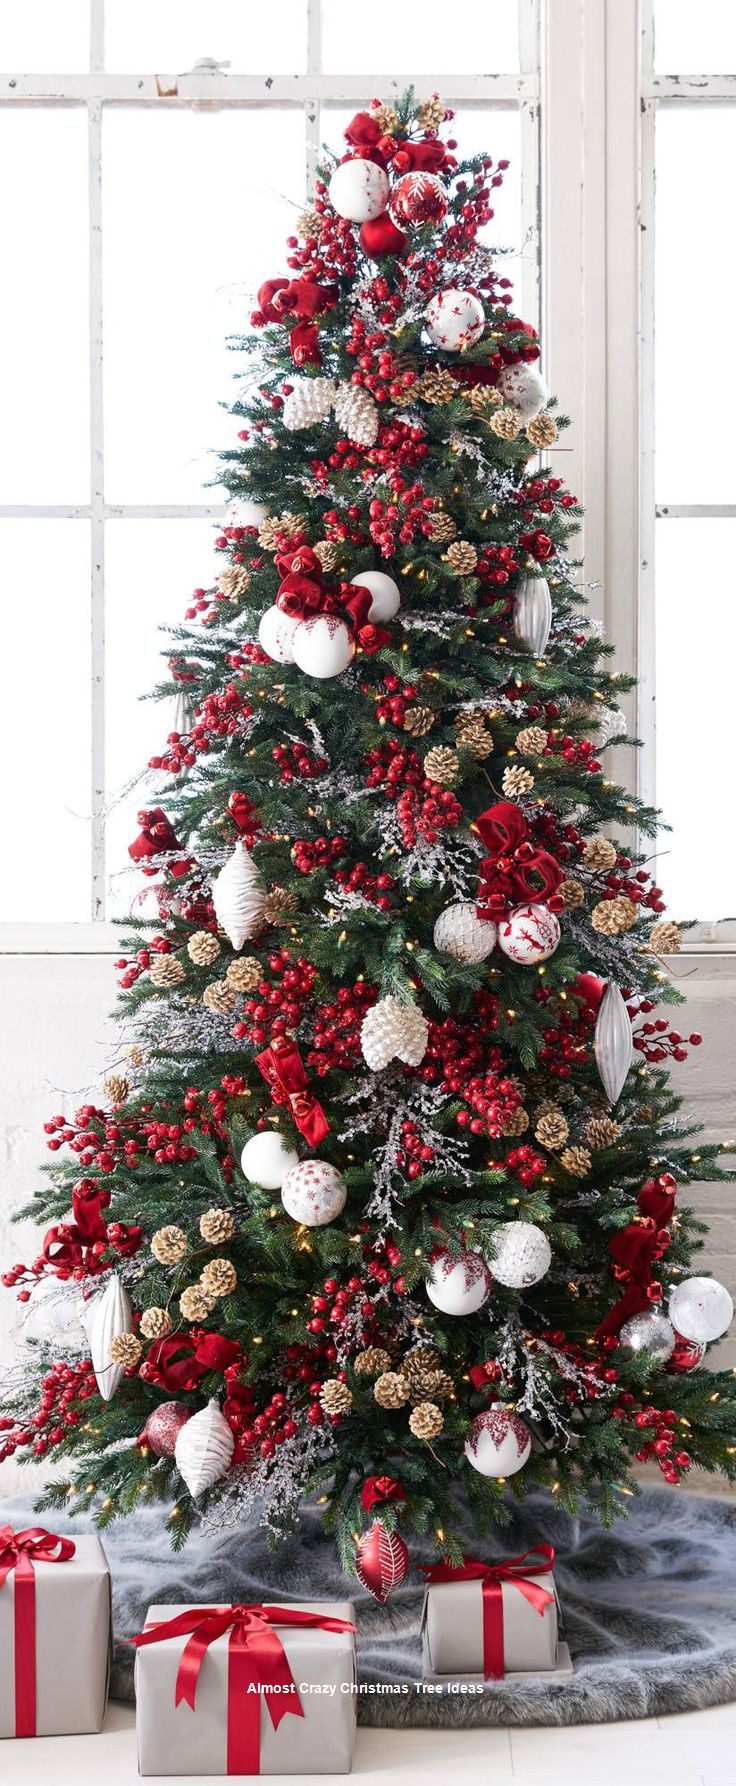 Pin on Christmas tree ideas